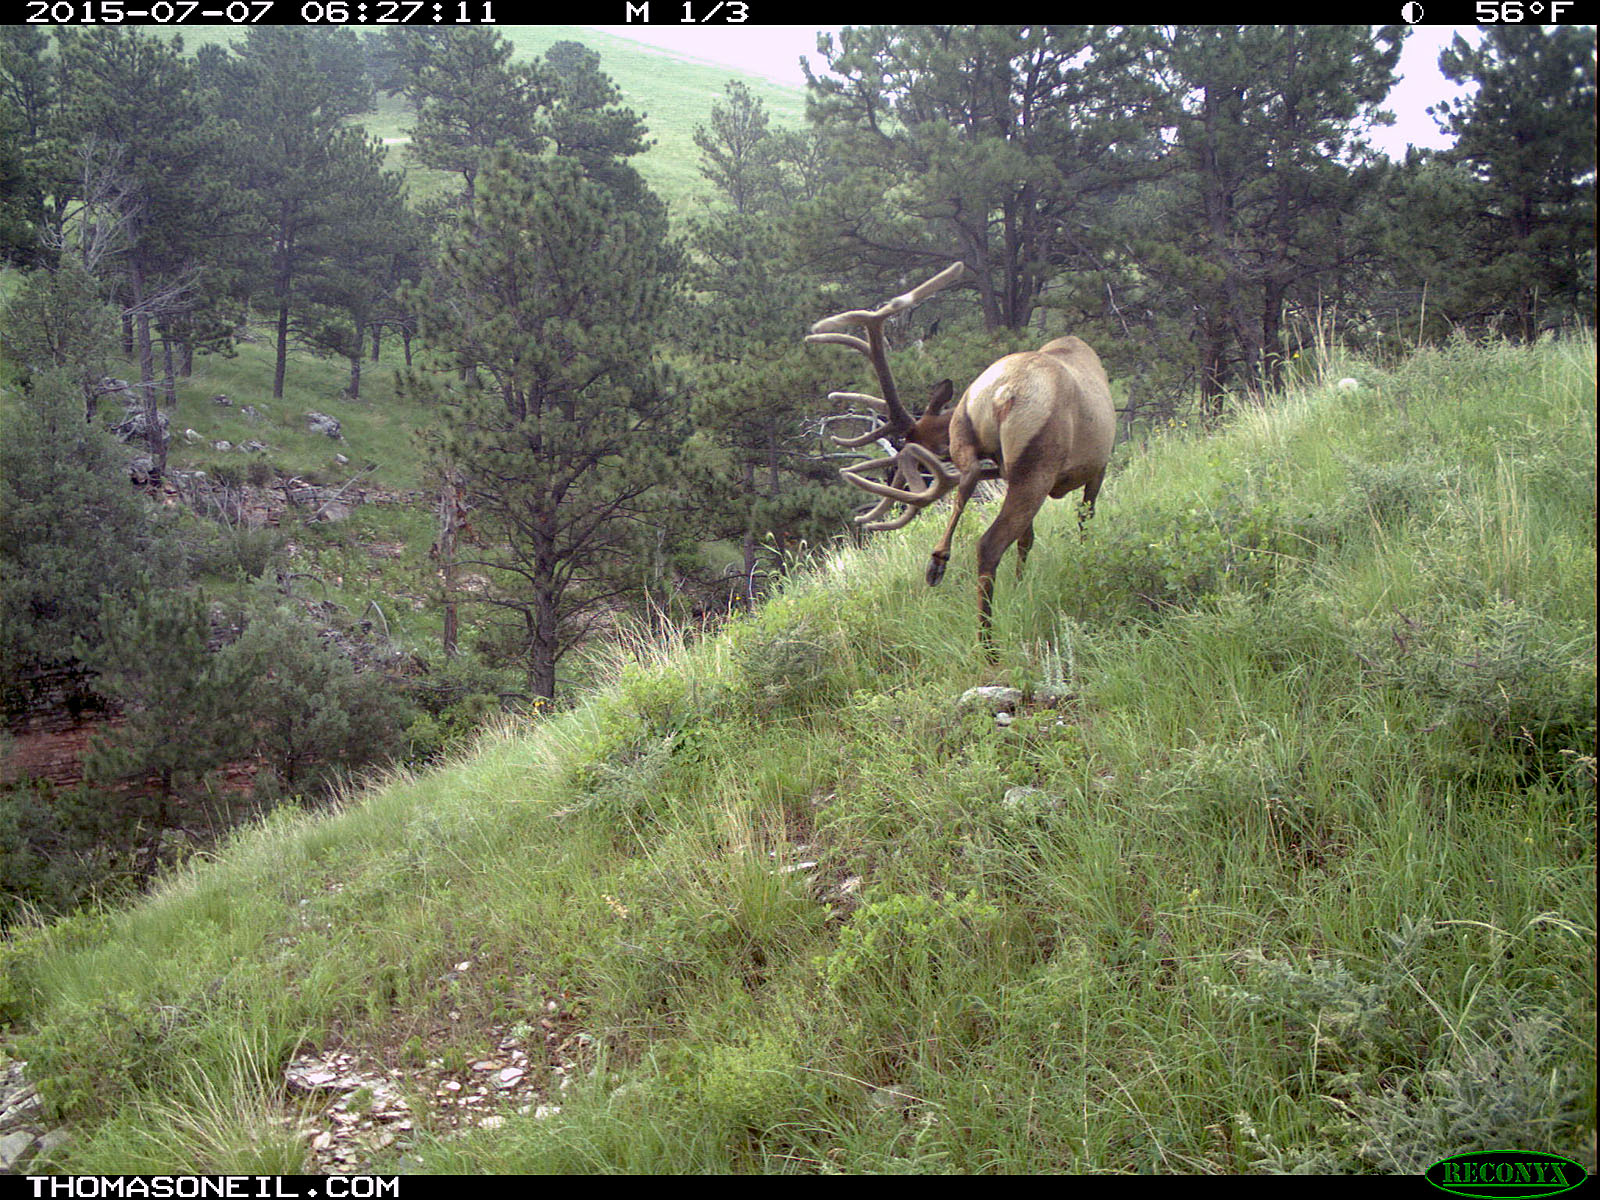 Elk scratching sequence on trailcam, 2 of 7, Wind Cave National Park, July 2015,